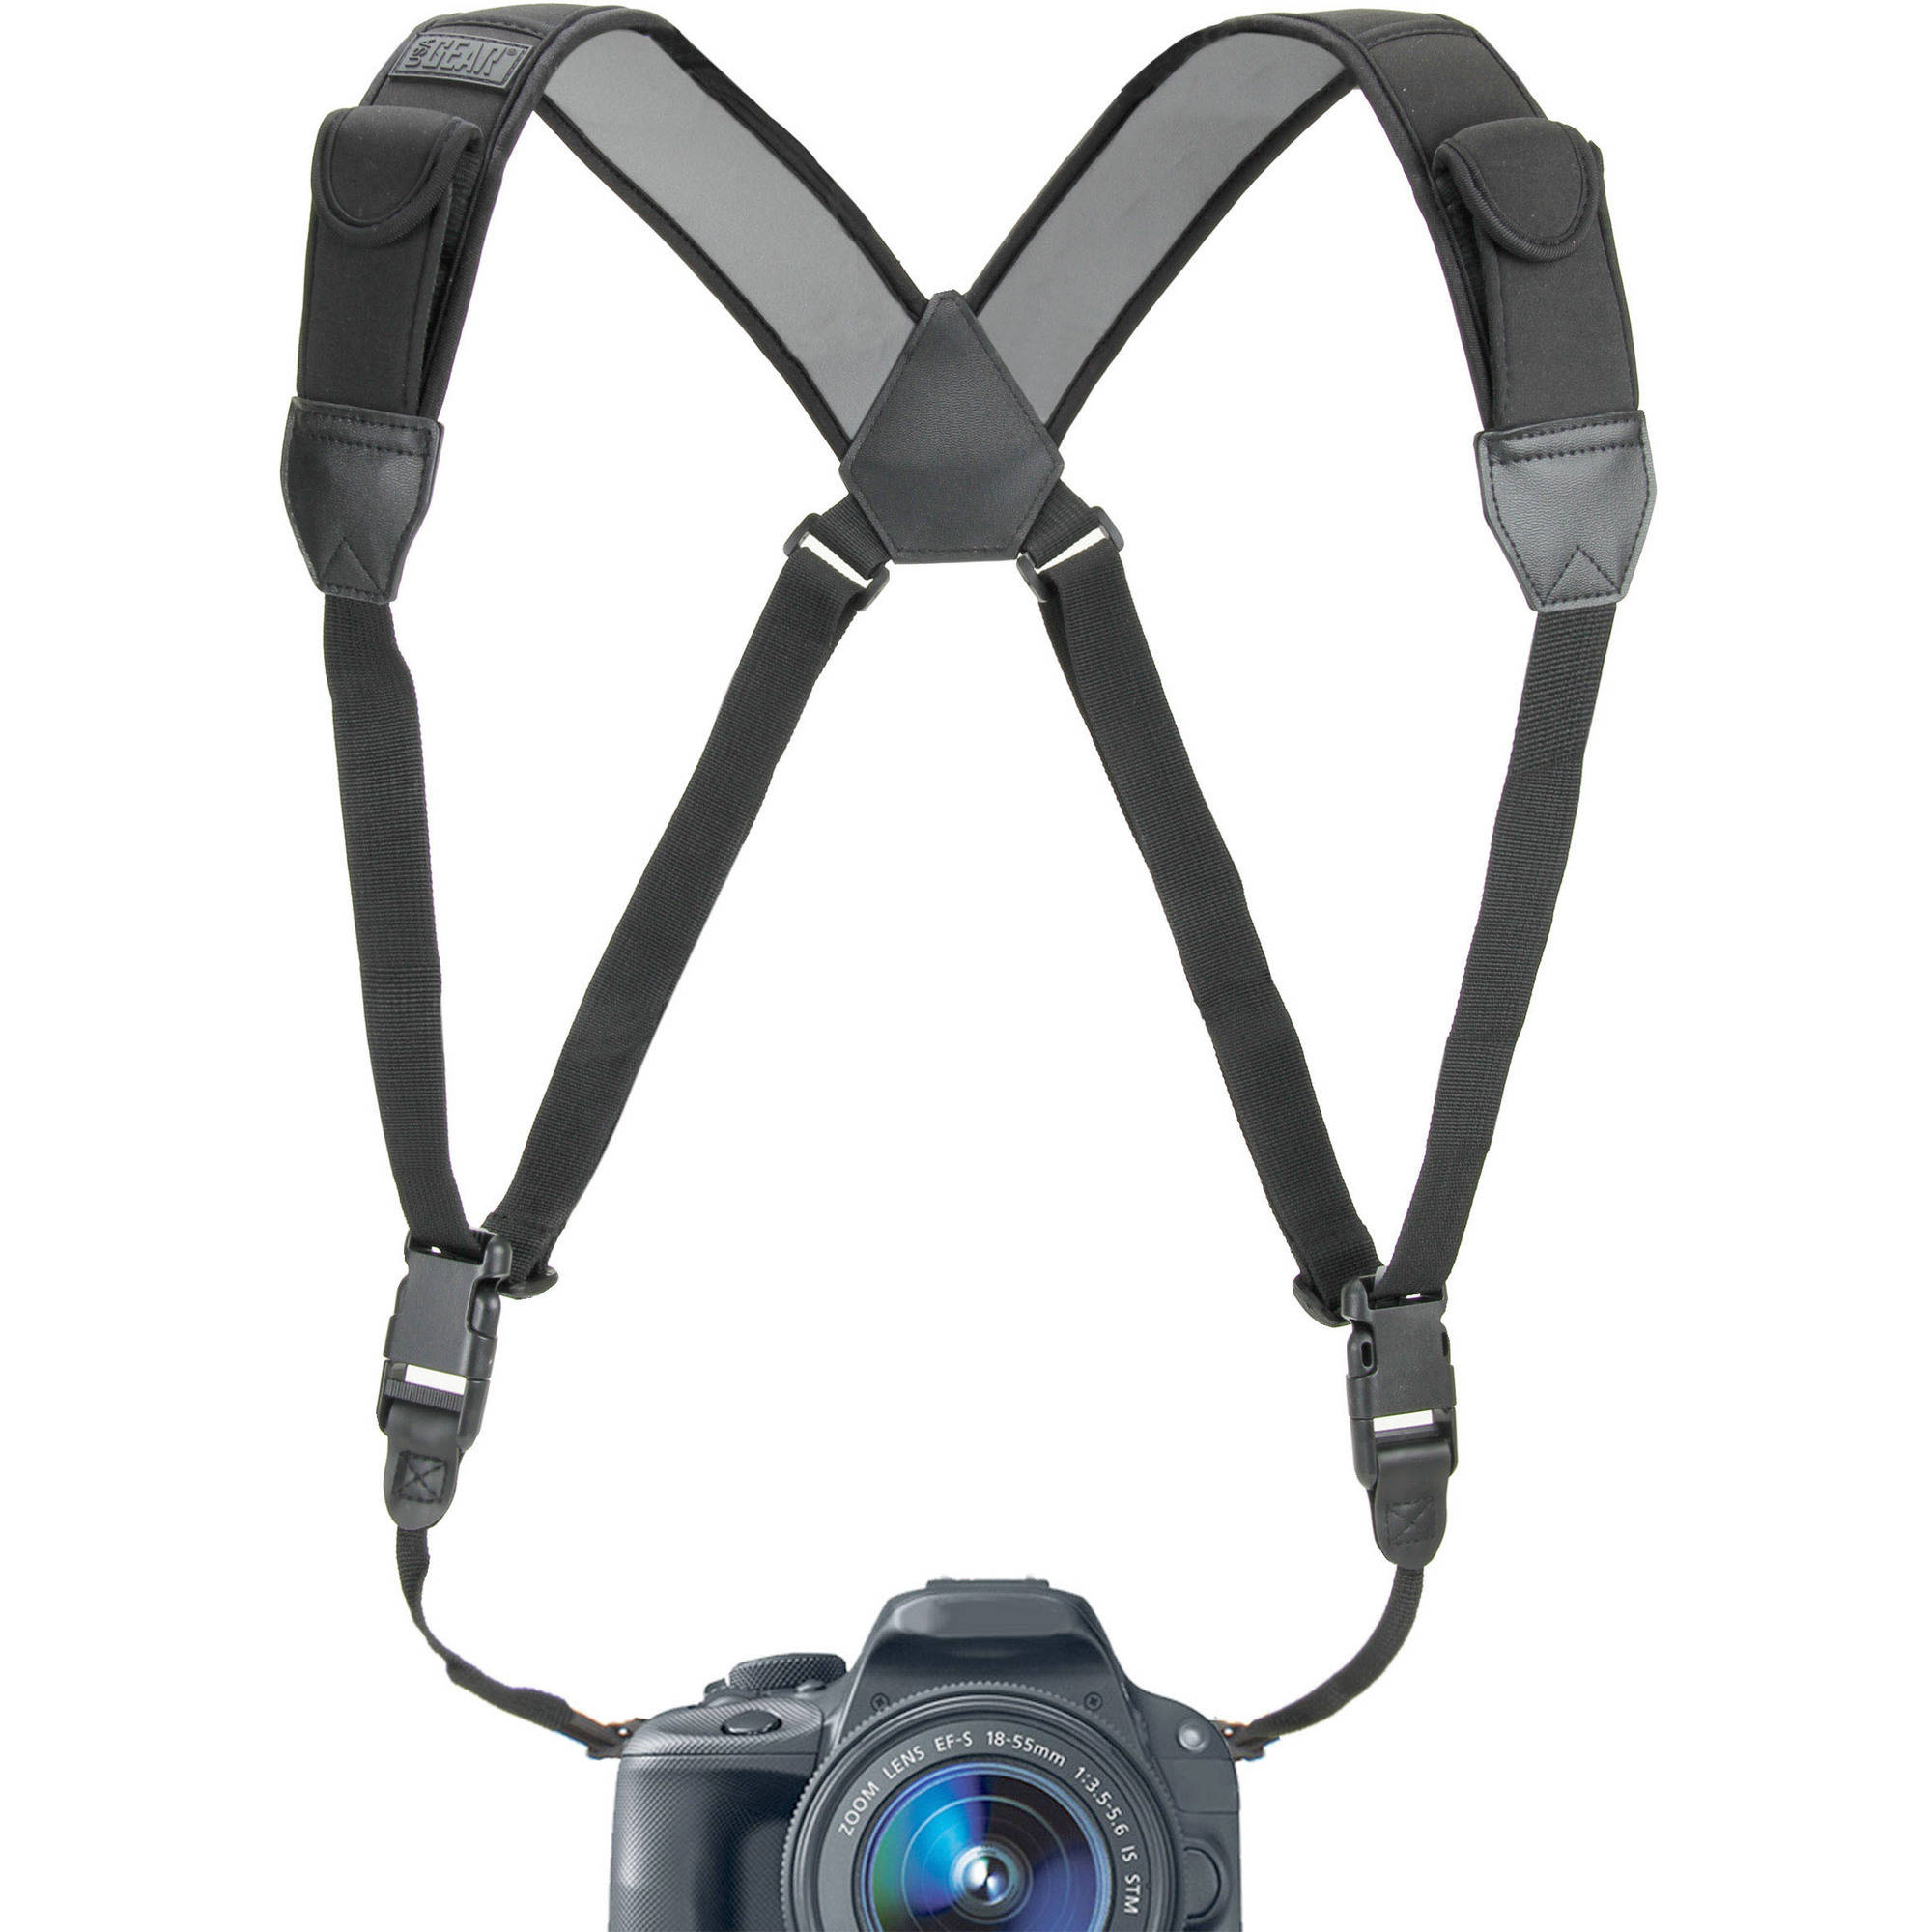 USA Gear DSLR Camera Harness Strap Kit with Comfort Padding and Quick Release System - Works with Canon , Nikon , Sony , Fujifilm , Samsung and More Cameras